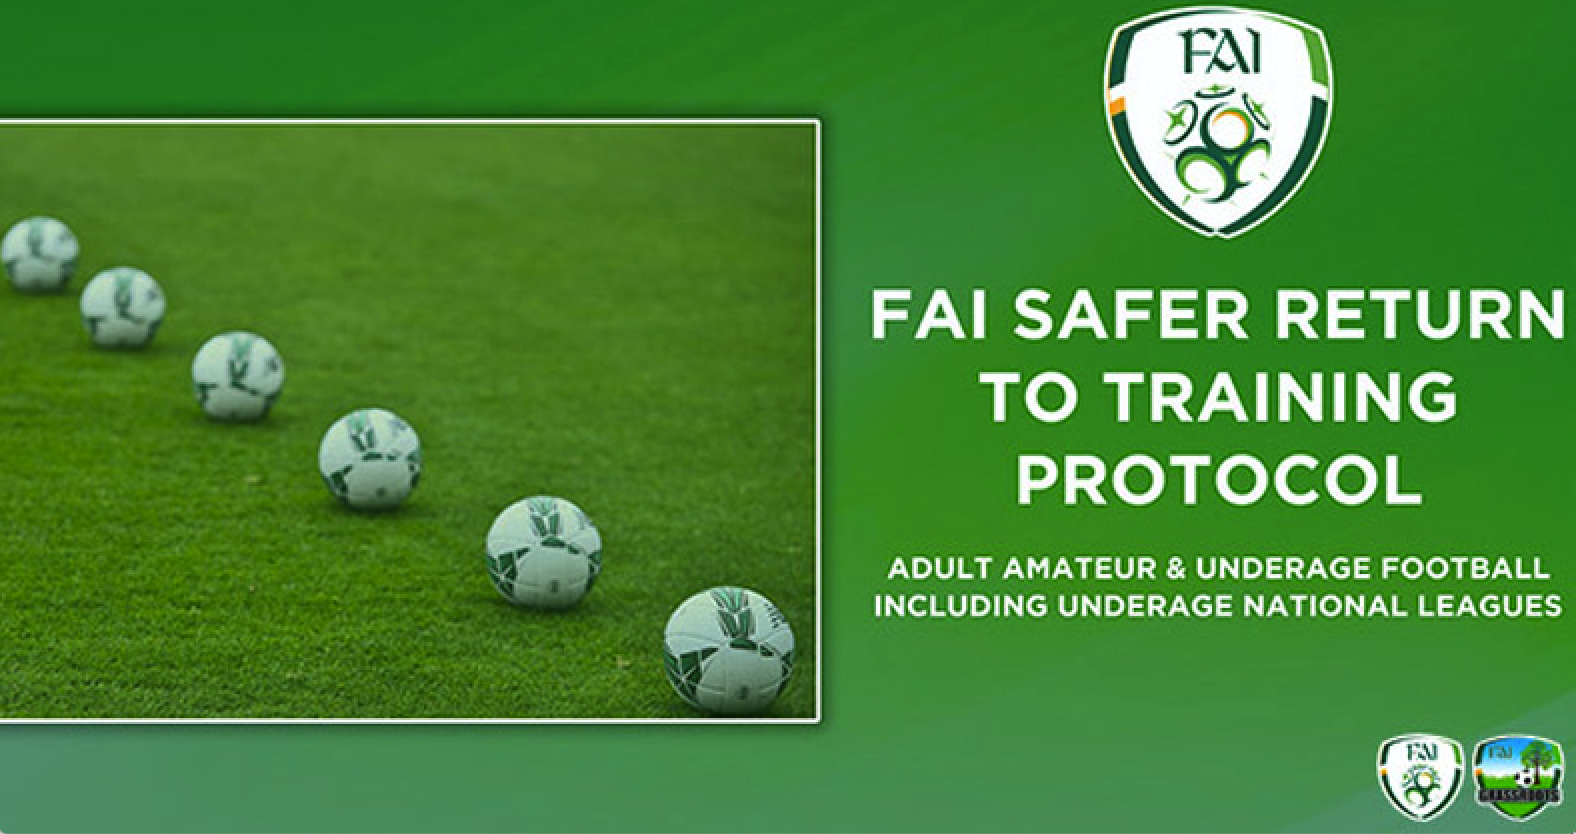 Fai 20safer 20return 20to 20training 20document